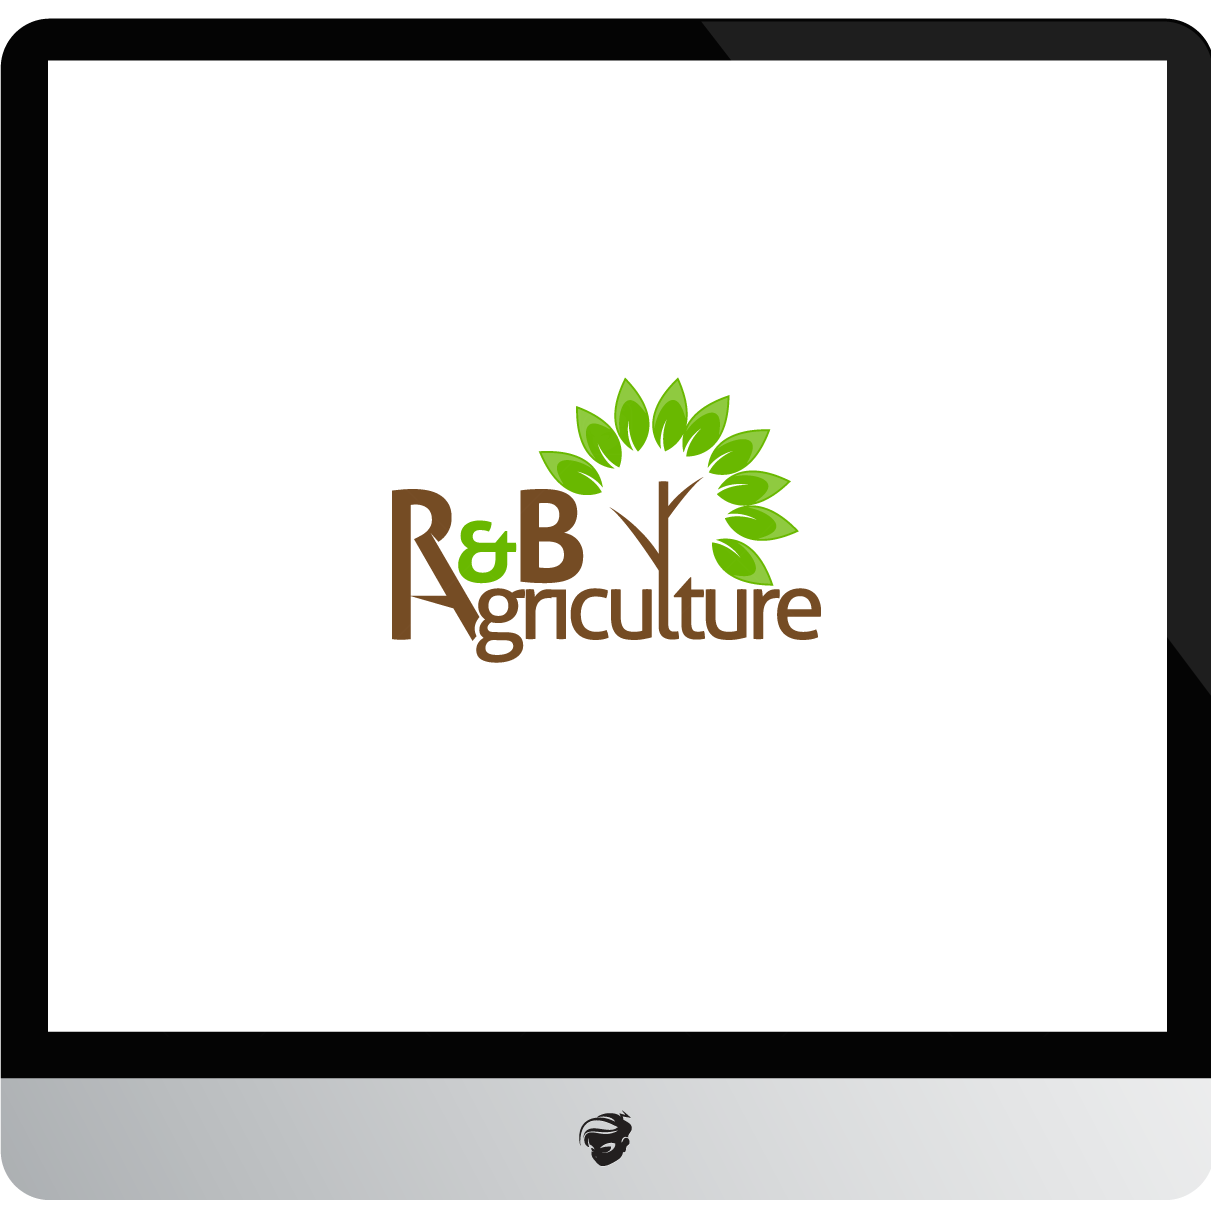 Logo Design by zesthar - Entry No. 11 in the Logo Design Contest Captivating Logo Design for R & B Agriculture.